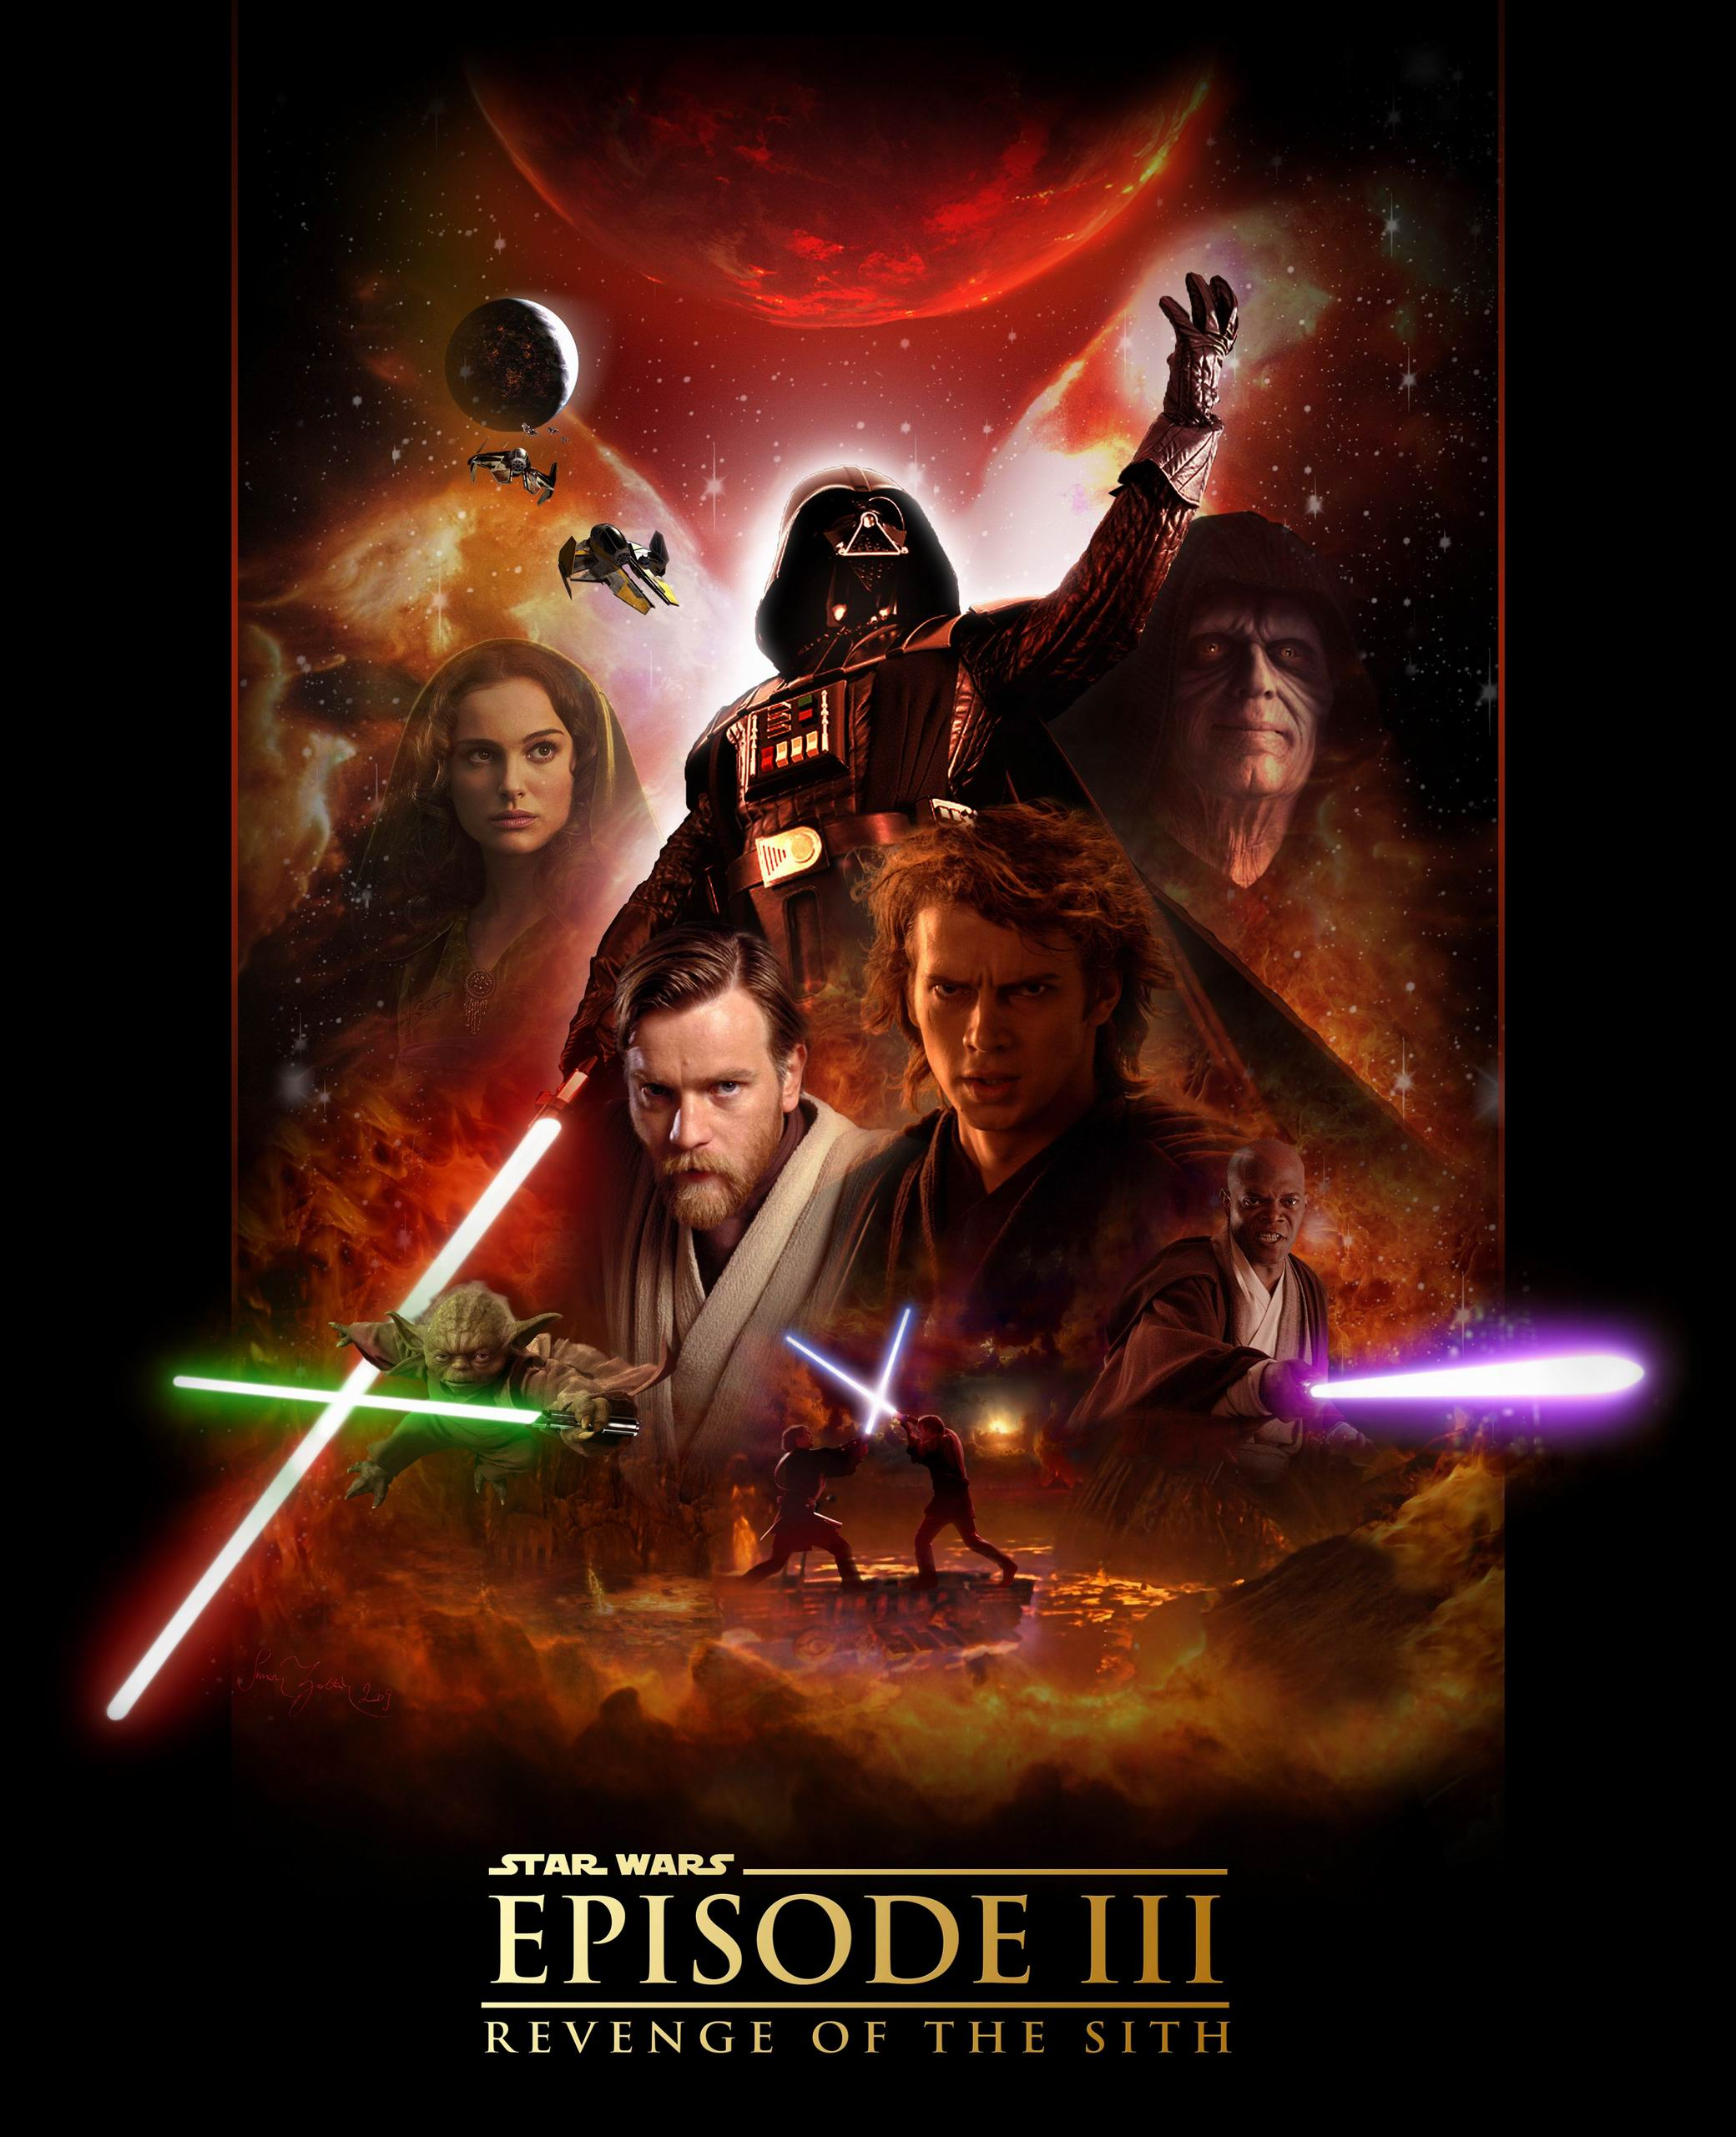 an analysis of episode iii of the star wars Star wars: episode iii - revenge of the it supposedly forms the mythic heart of the gigantic third episode of george lucas's colossally inflated star wars prequel.